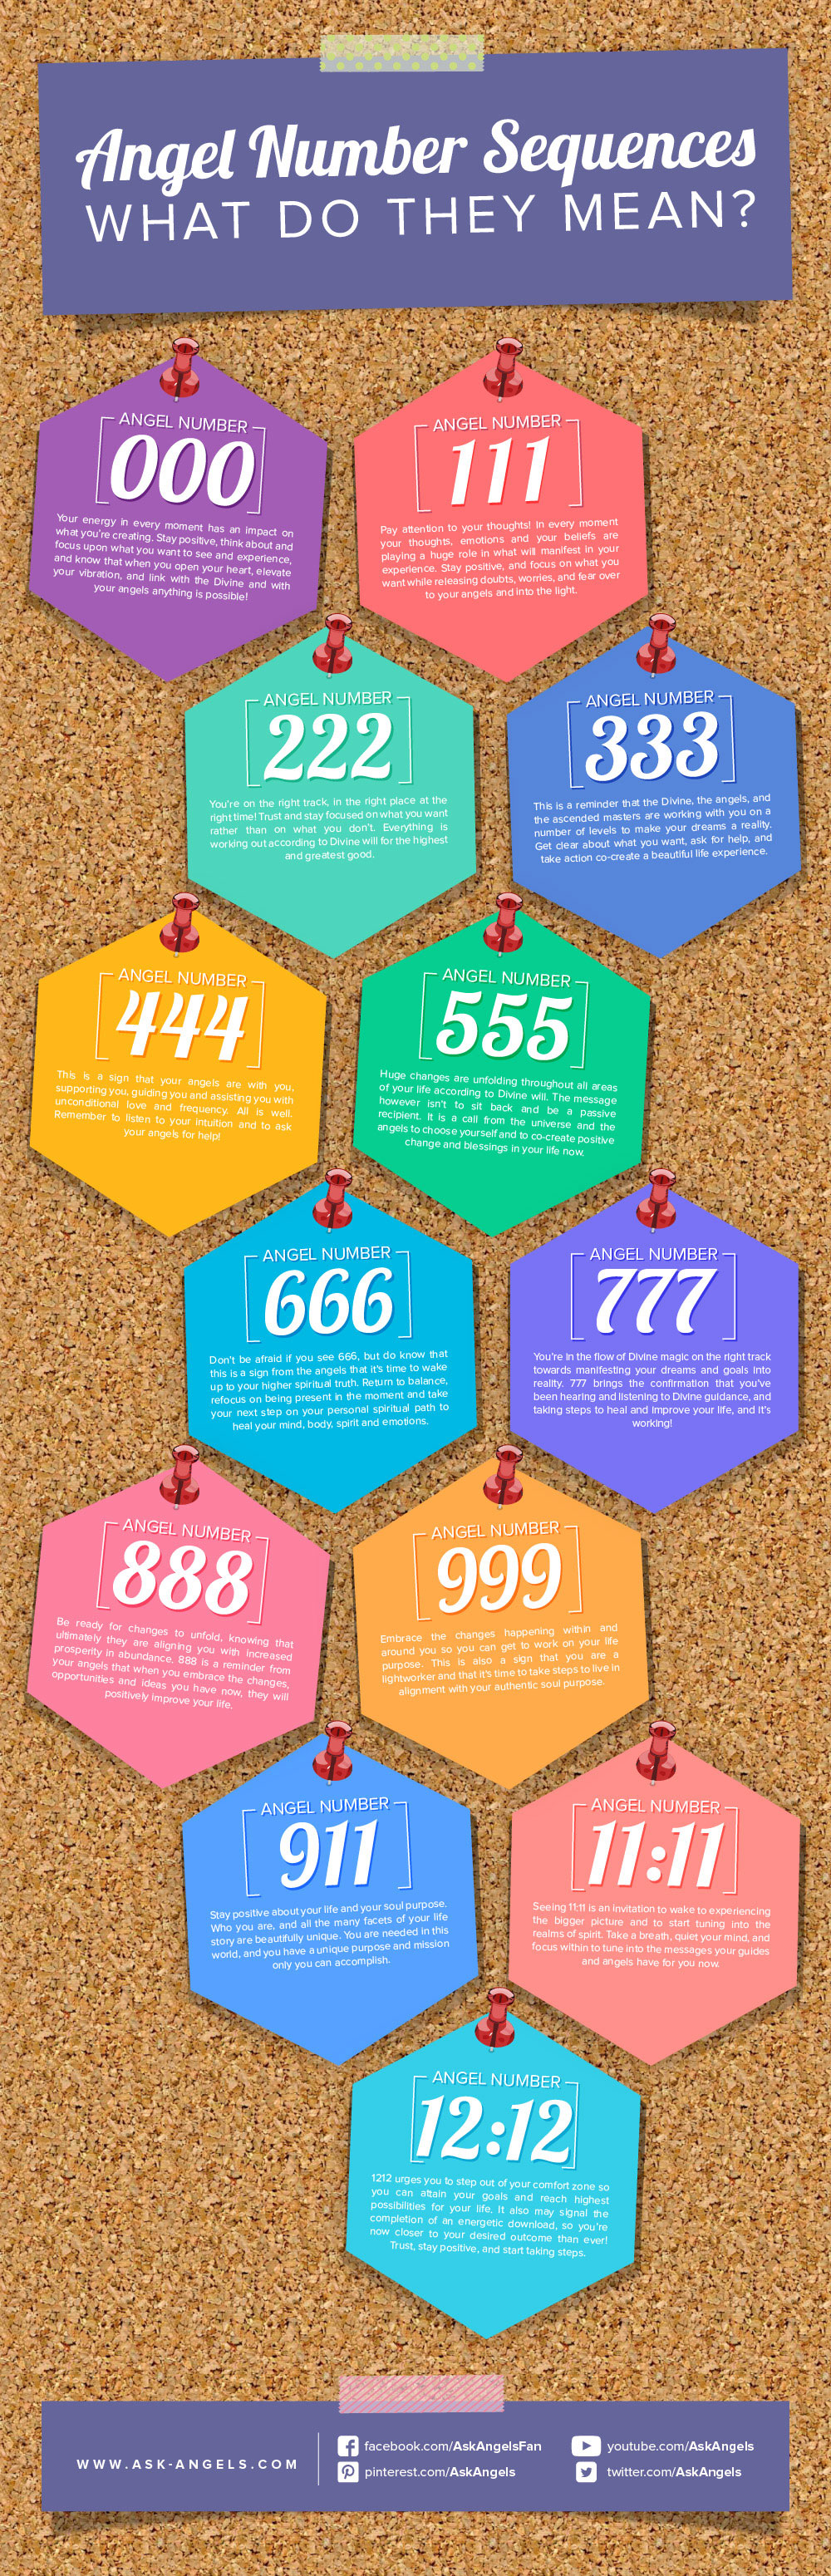 Angel Number Sequences are a common sign from spirit. Do you keep seeing numbers like 111, 222, 333, 444, 555, 777, or any other triple numbers like this? Here's a visual look at the spiritual meaning.